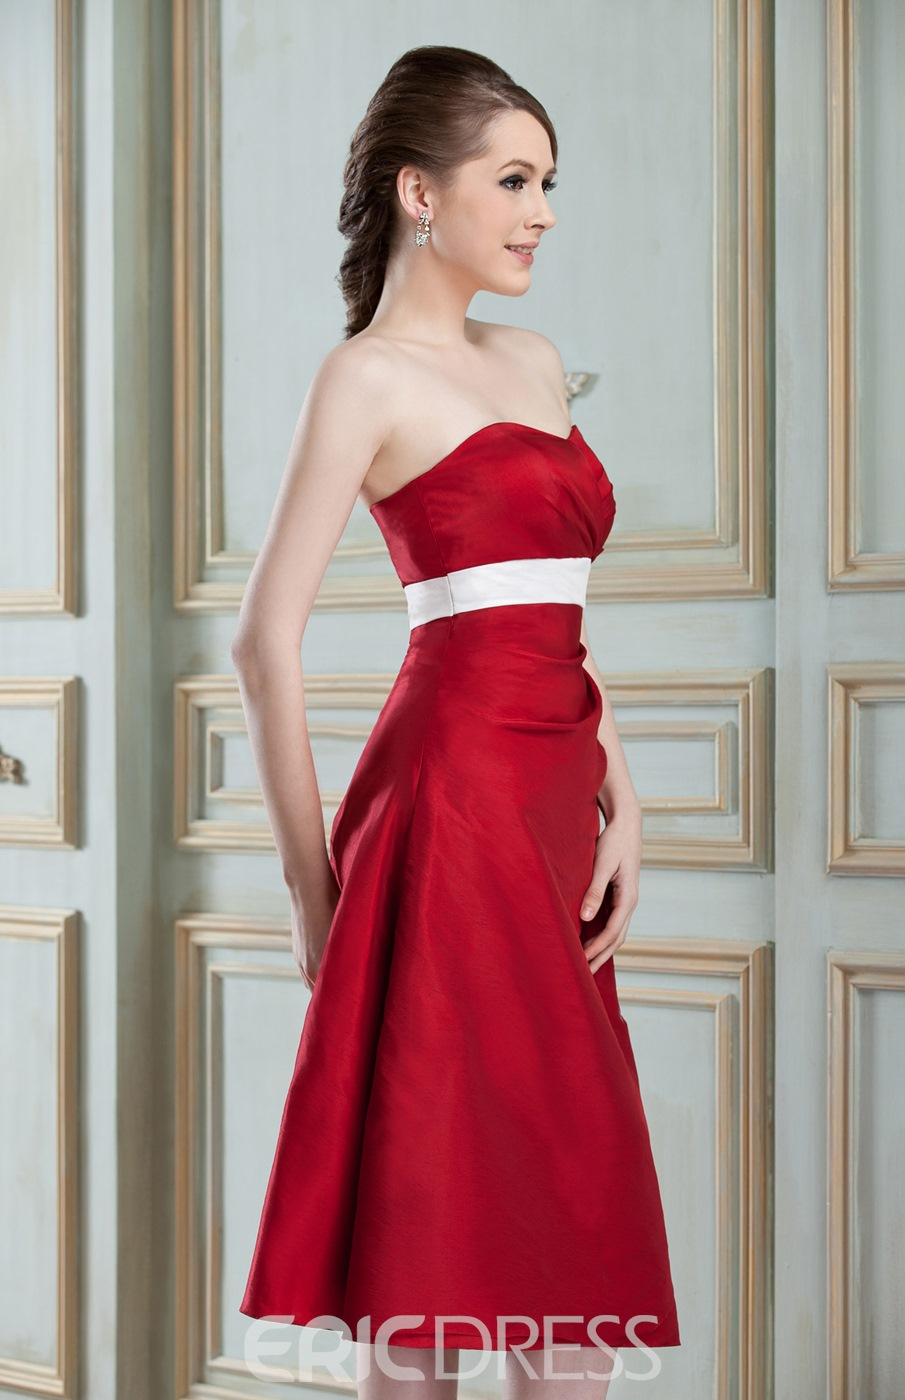 A-Line Knee-Length Sweetheart Neckline Bridesmaid Dress